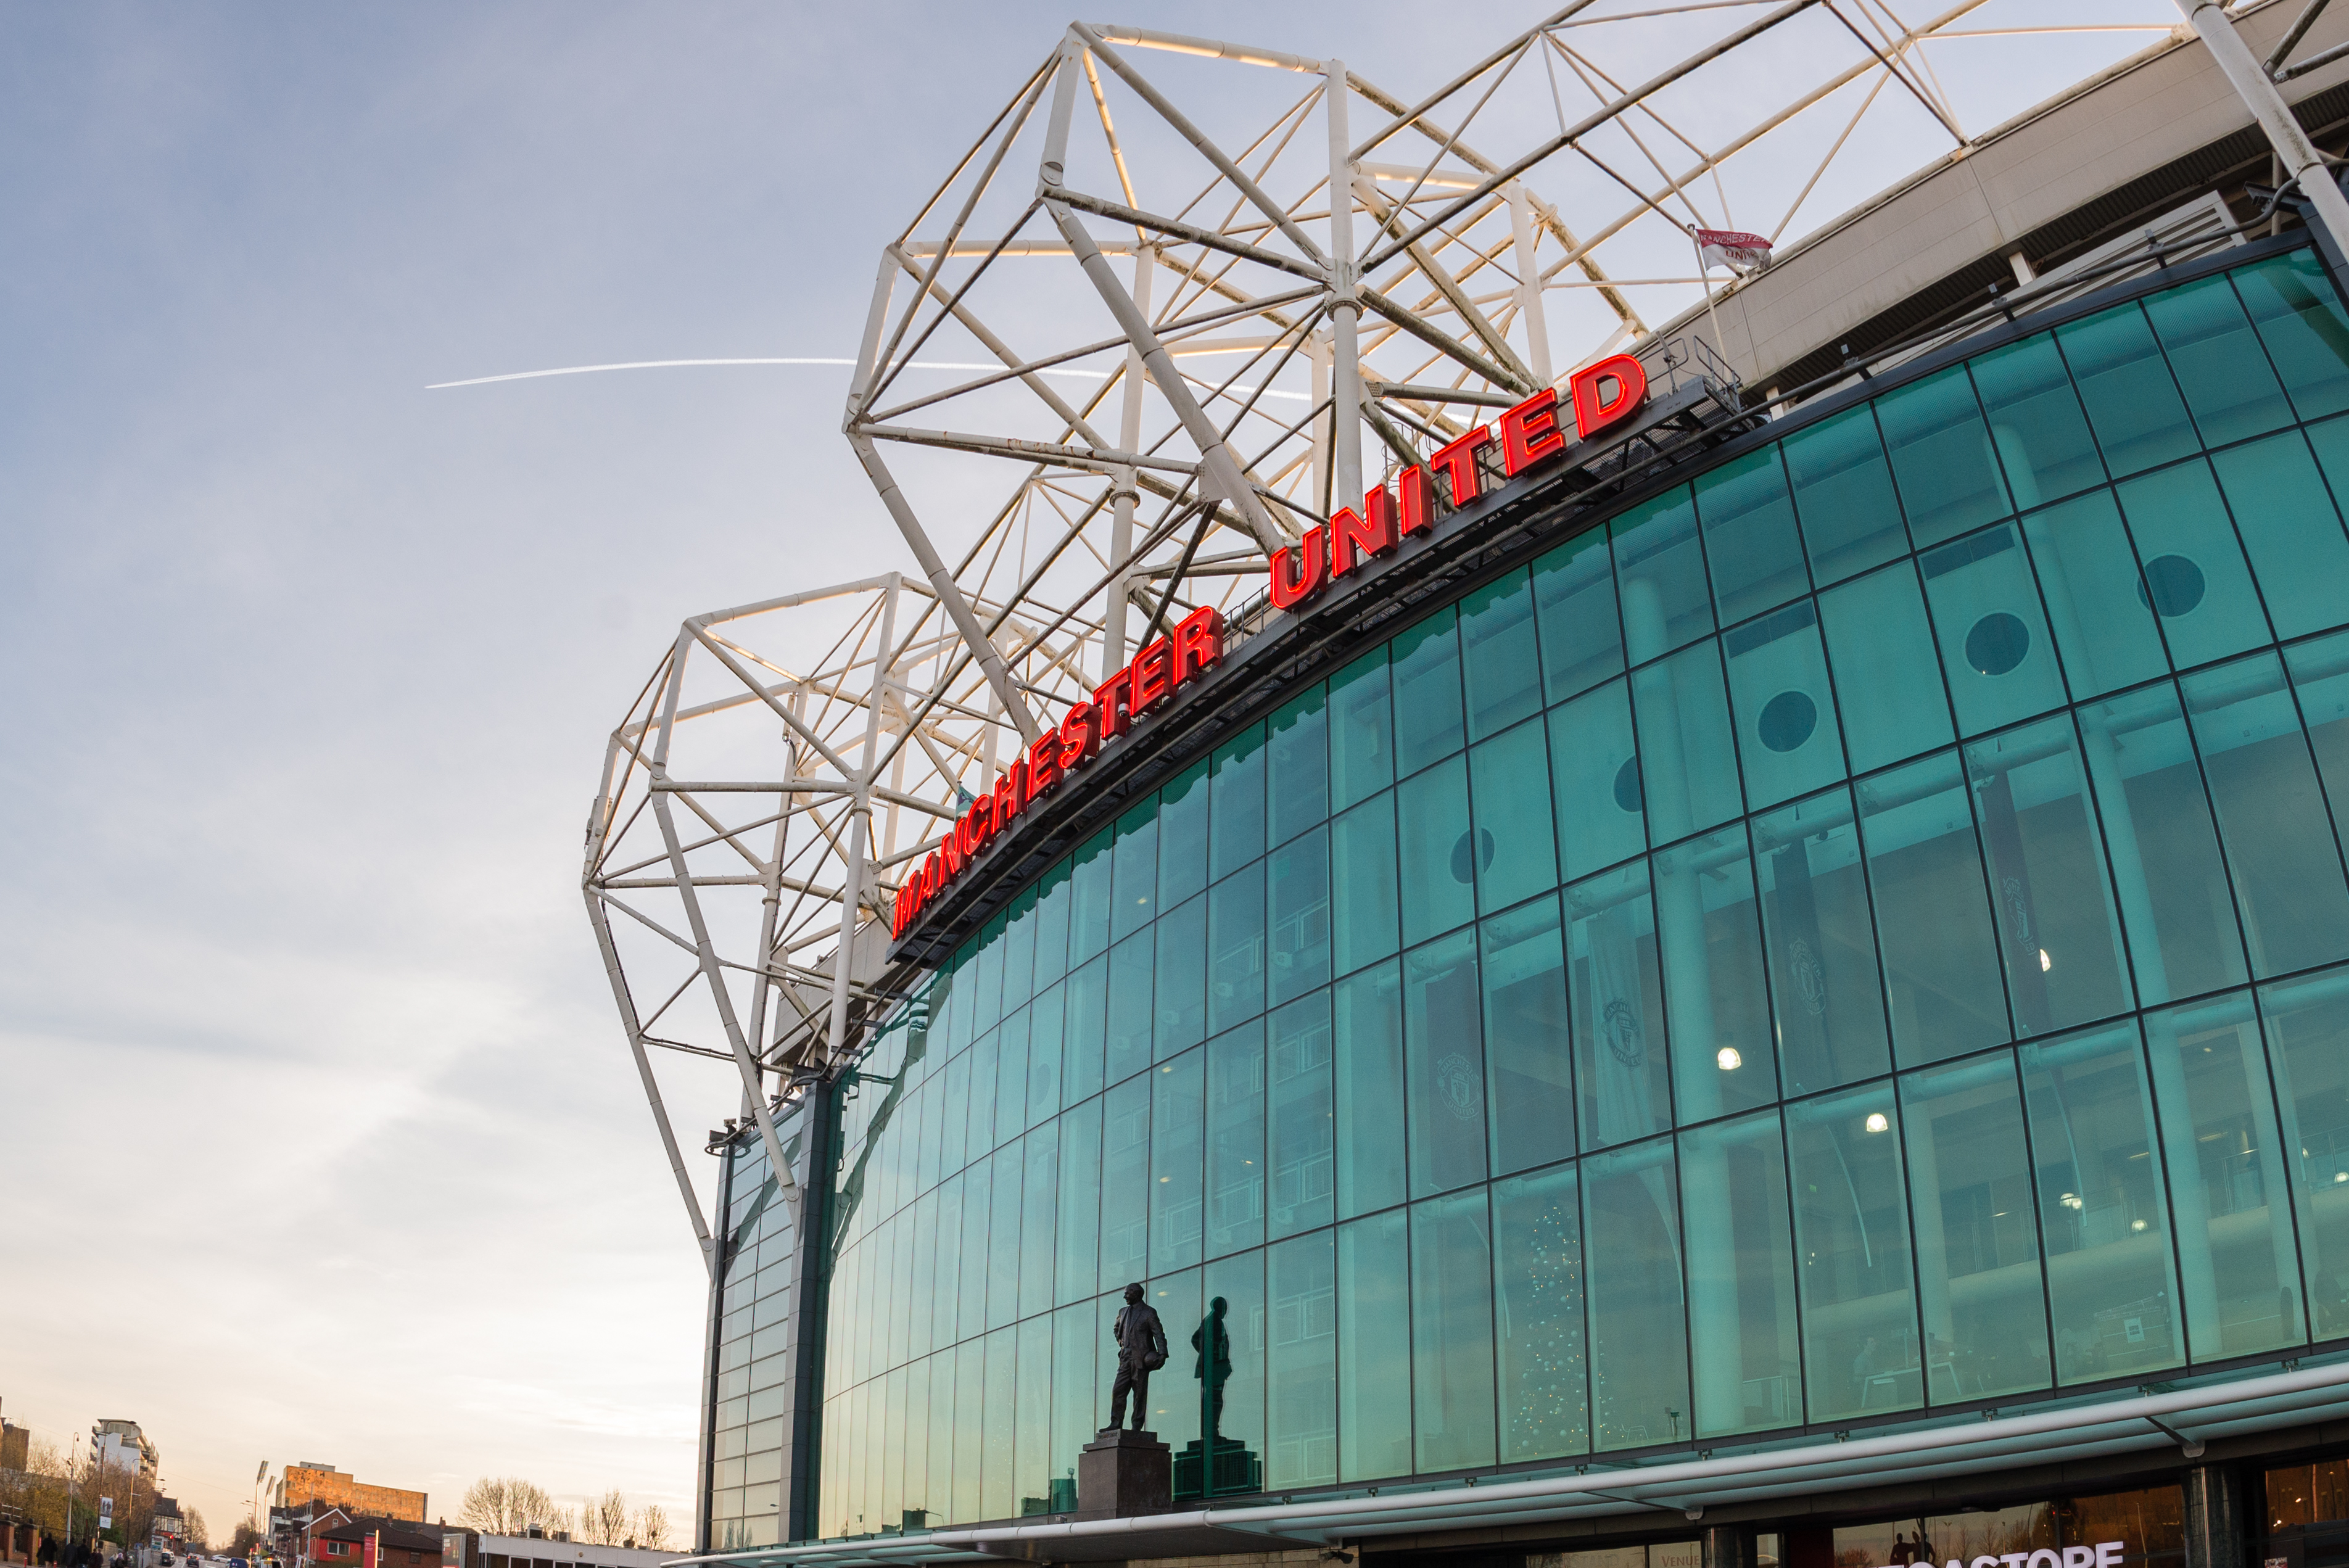 Manchester Events Venue - Old Trafford, Manchester United Football Club